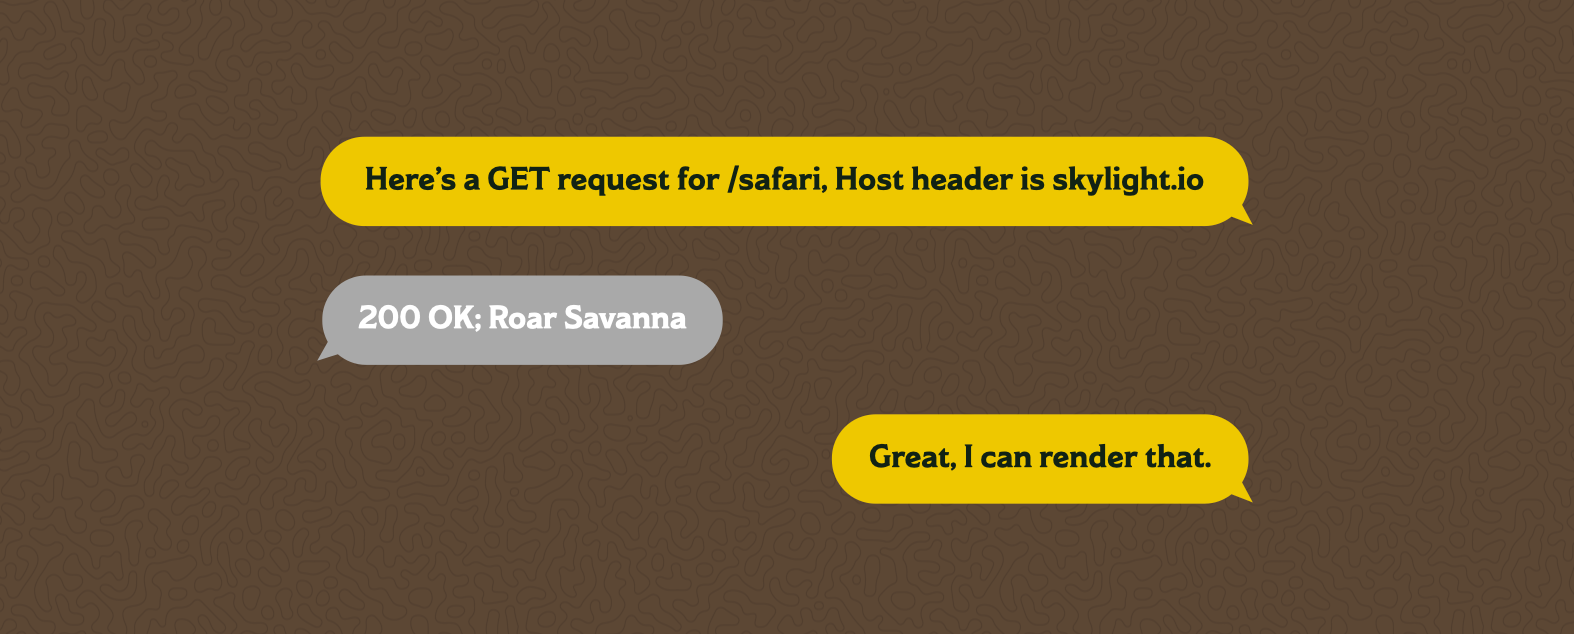 "A text message chain between a browser and a server. The browser says ""Here's a GET request for /safari, Host header is skylight.io"" The server responds with ""200 OK; Roar Savanna?"" The browser says ""Great, I can render that."""